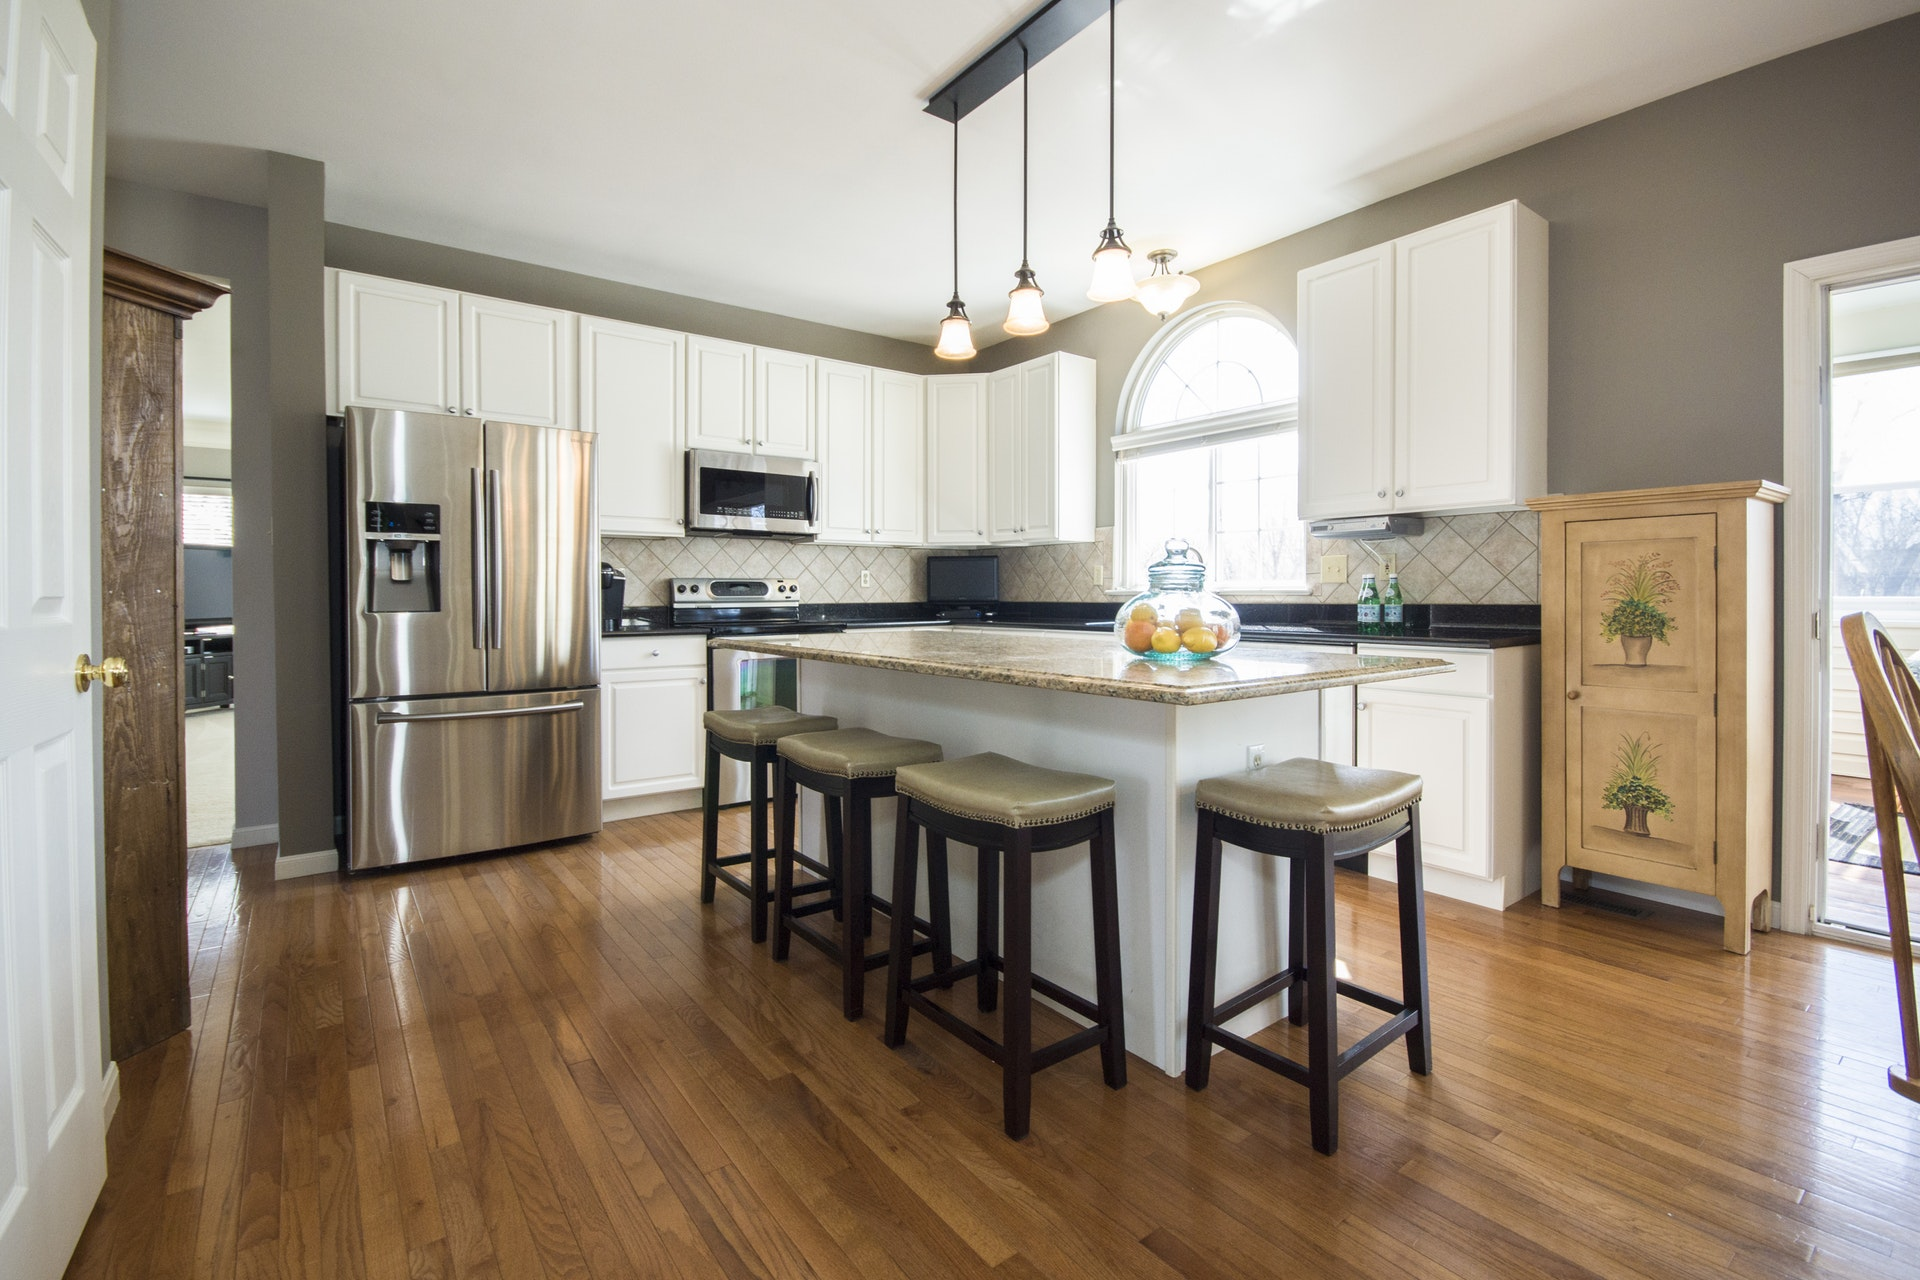 Kitchen Remodeling on a Budget in Anaheim, CA